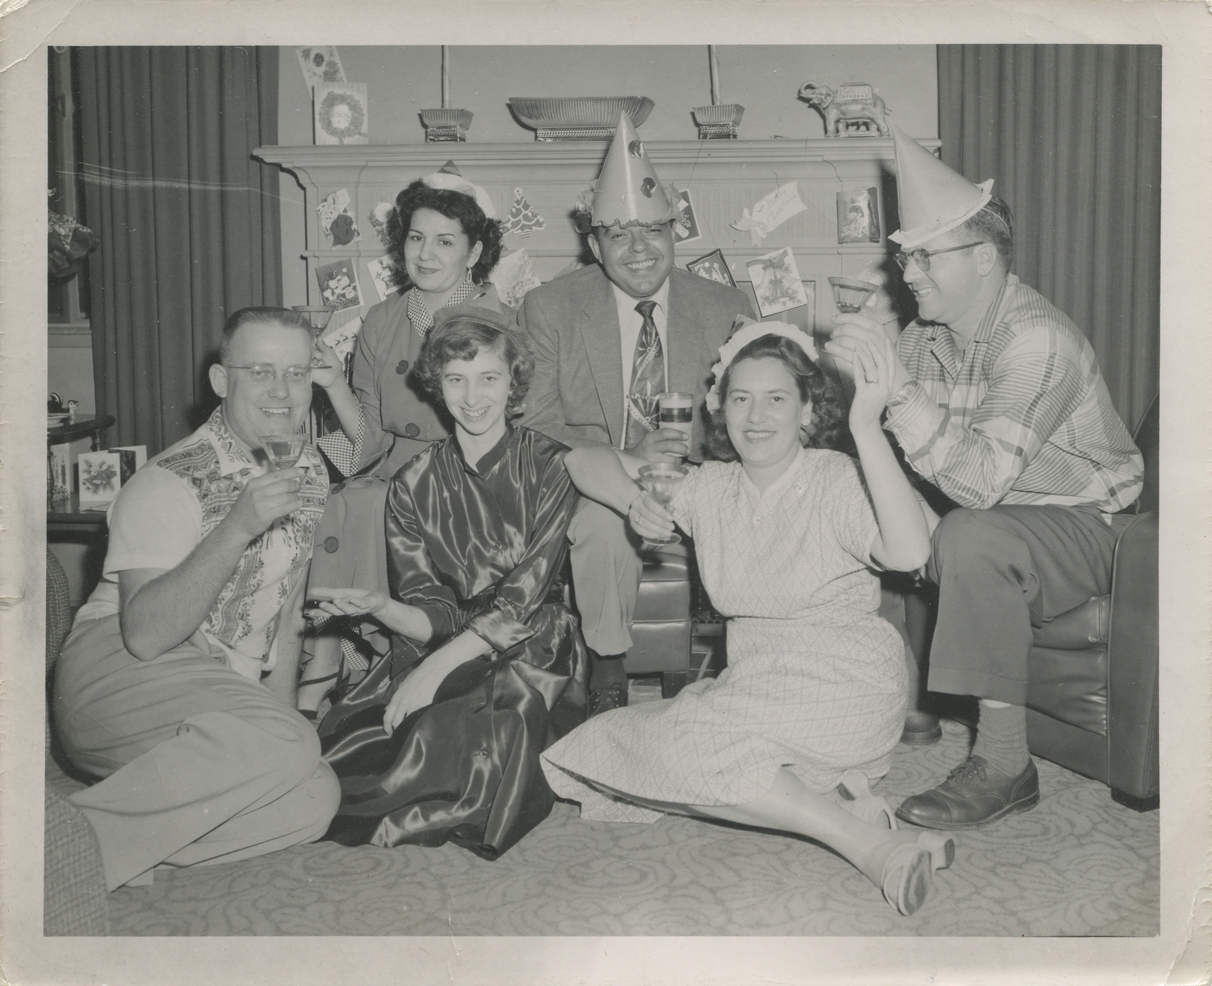 vintage New Years Eve Party image , The Vintage Inn